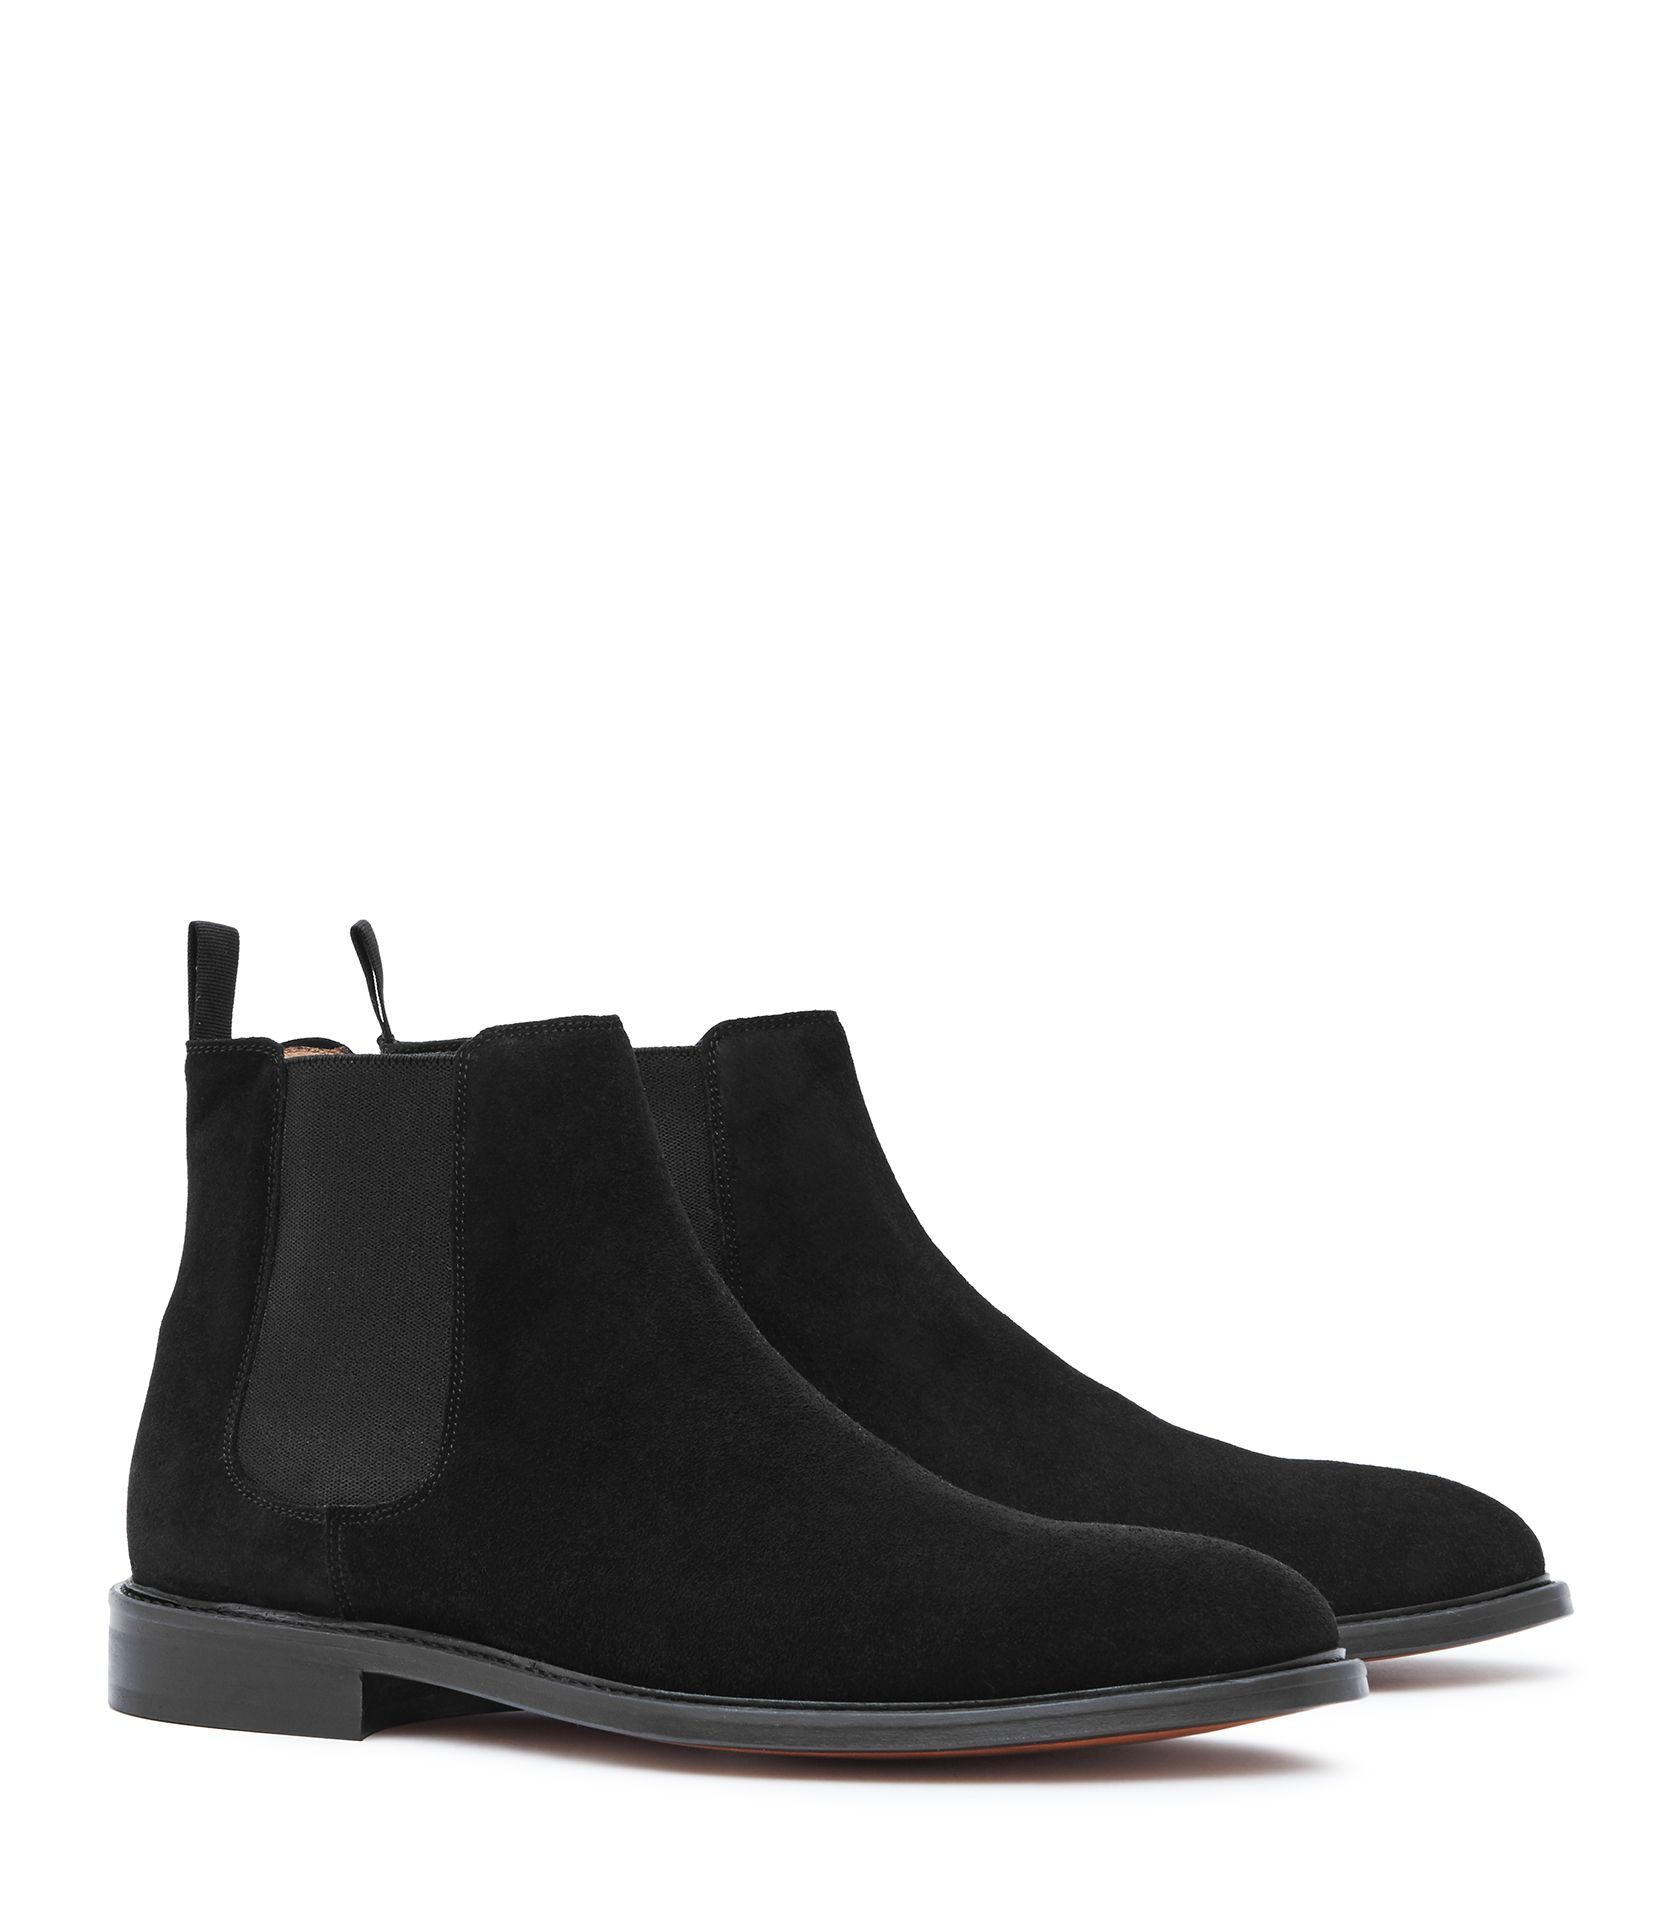 Mens Black Suede Chelsea Boots - Reiss Tenor Suede   Clothes ... 56a232d3bc